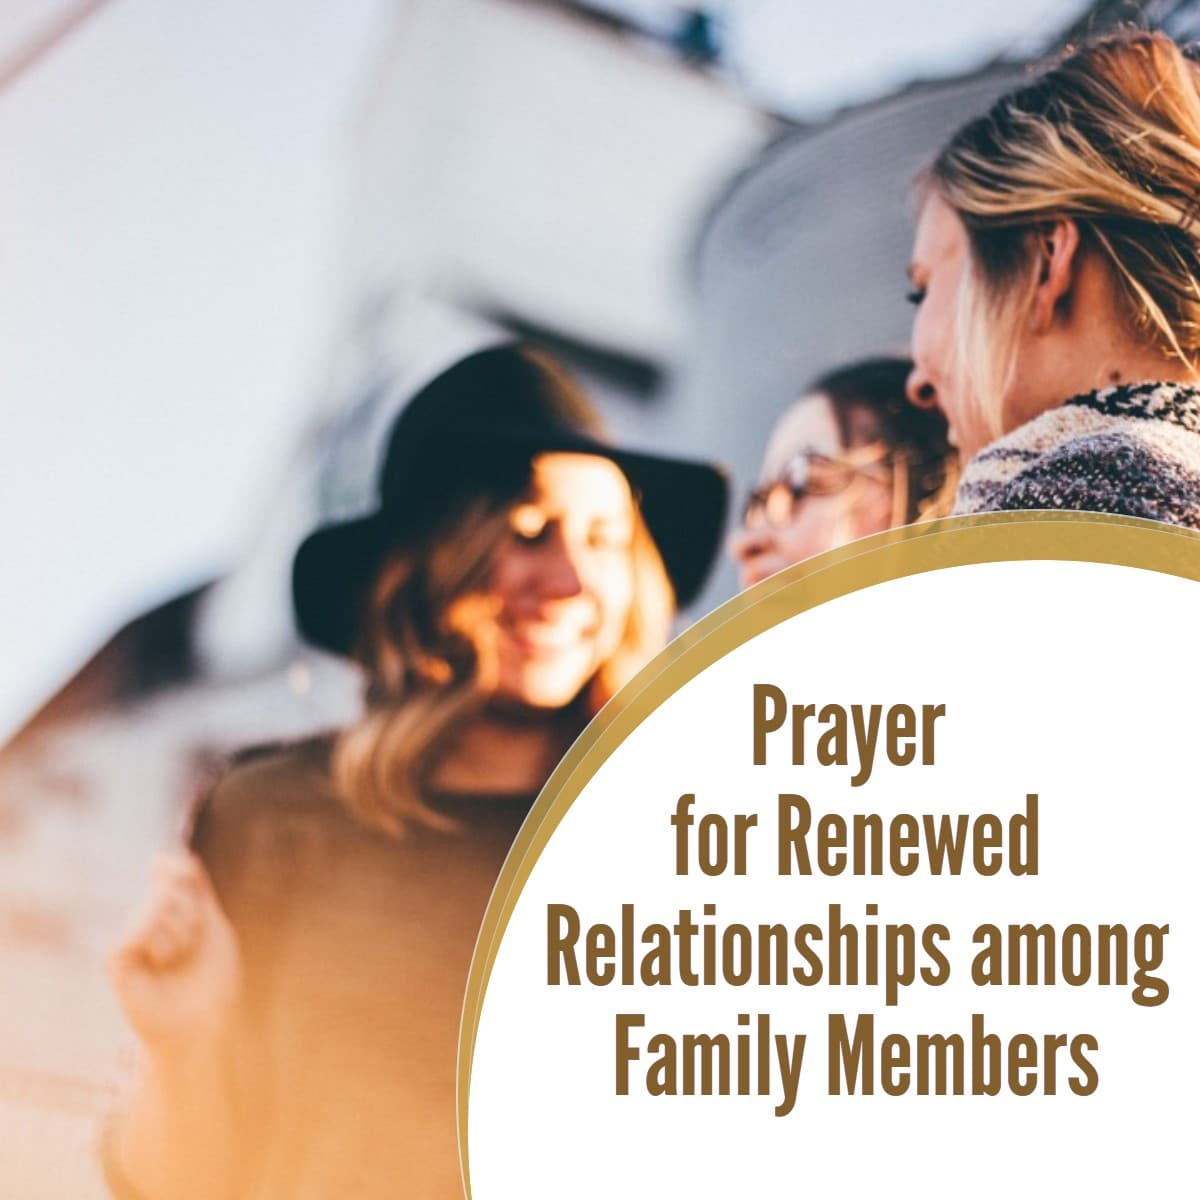 Prayer for Renewed Relationships among Family Members